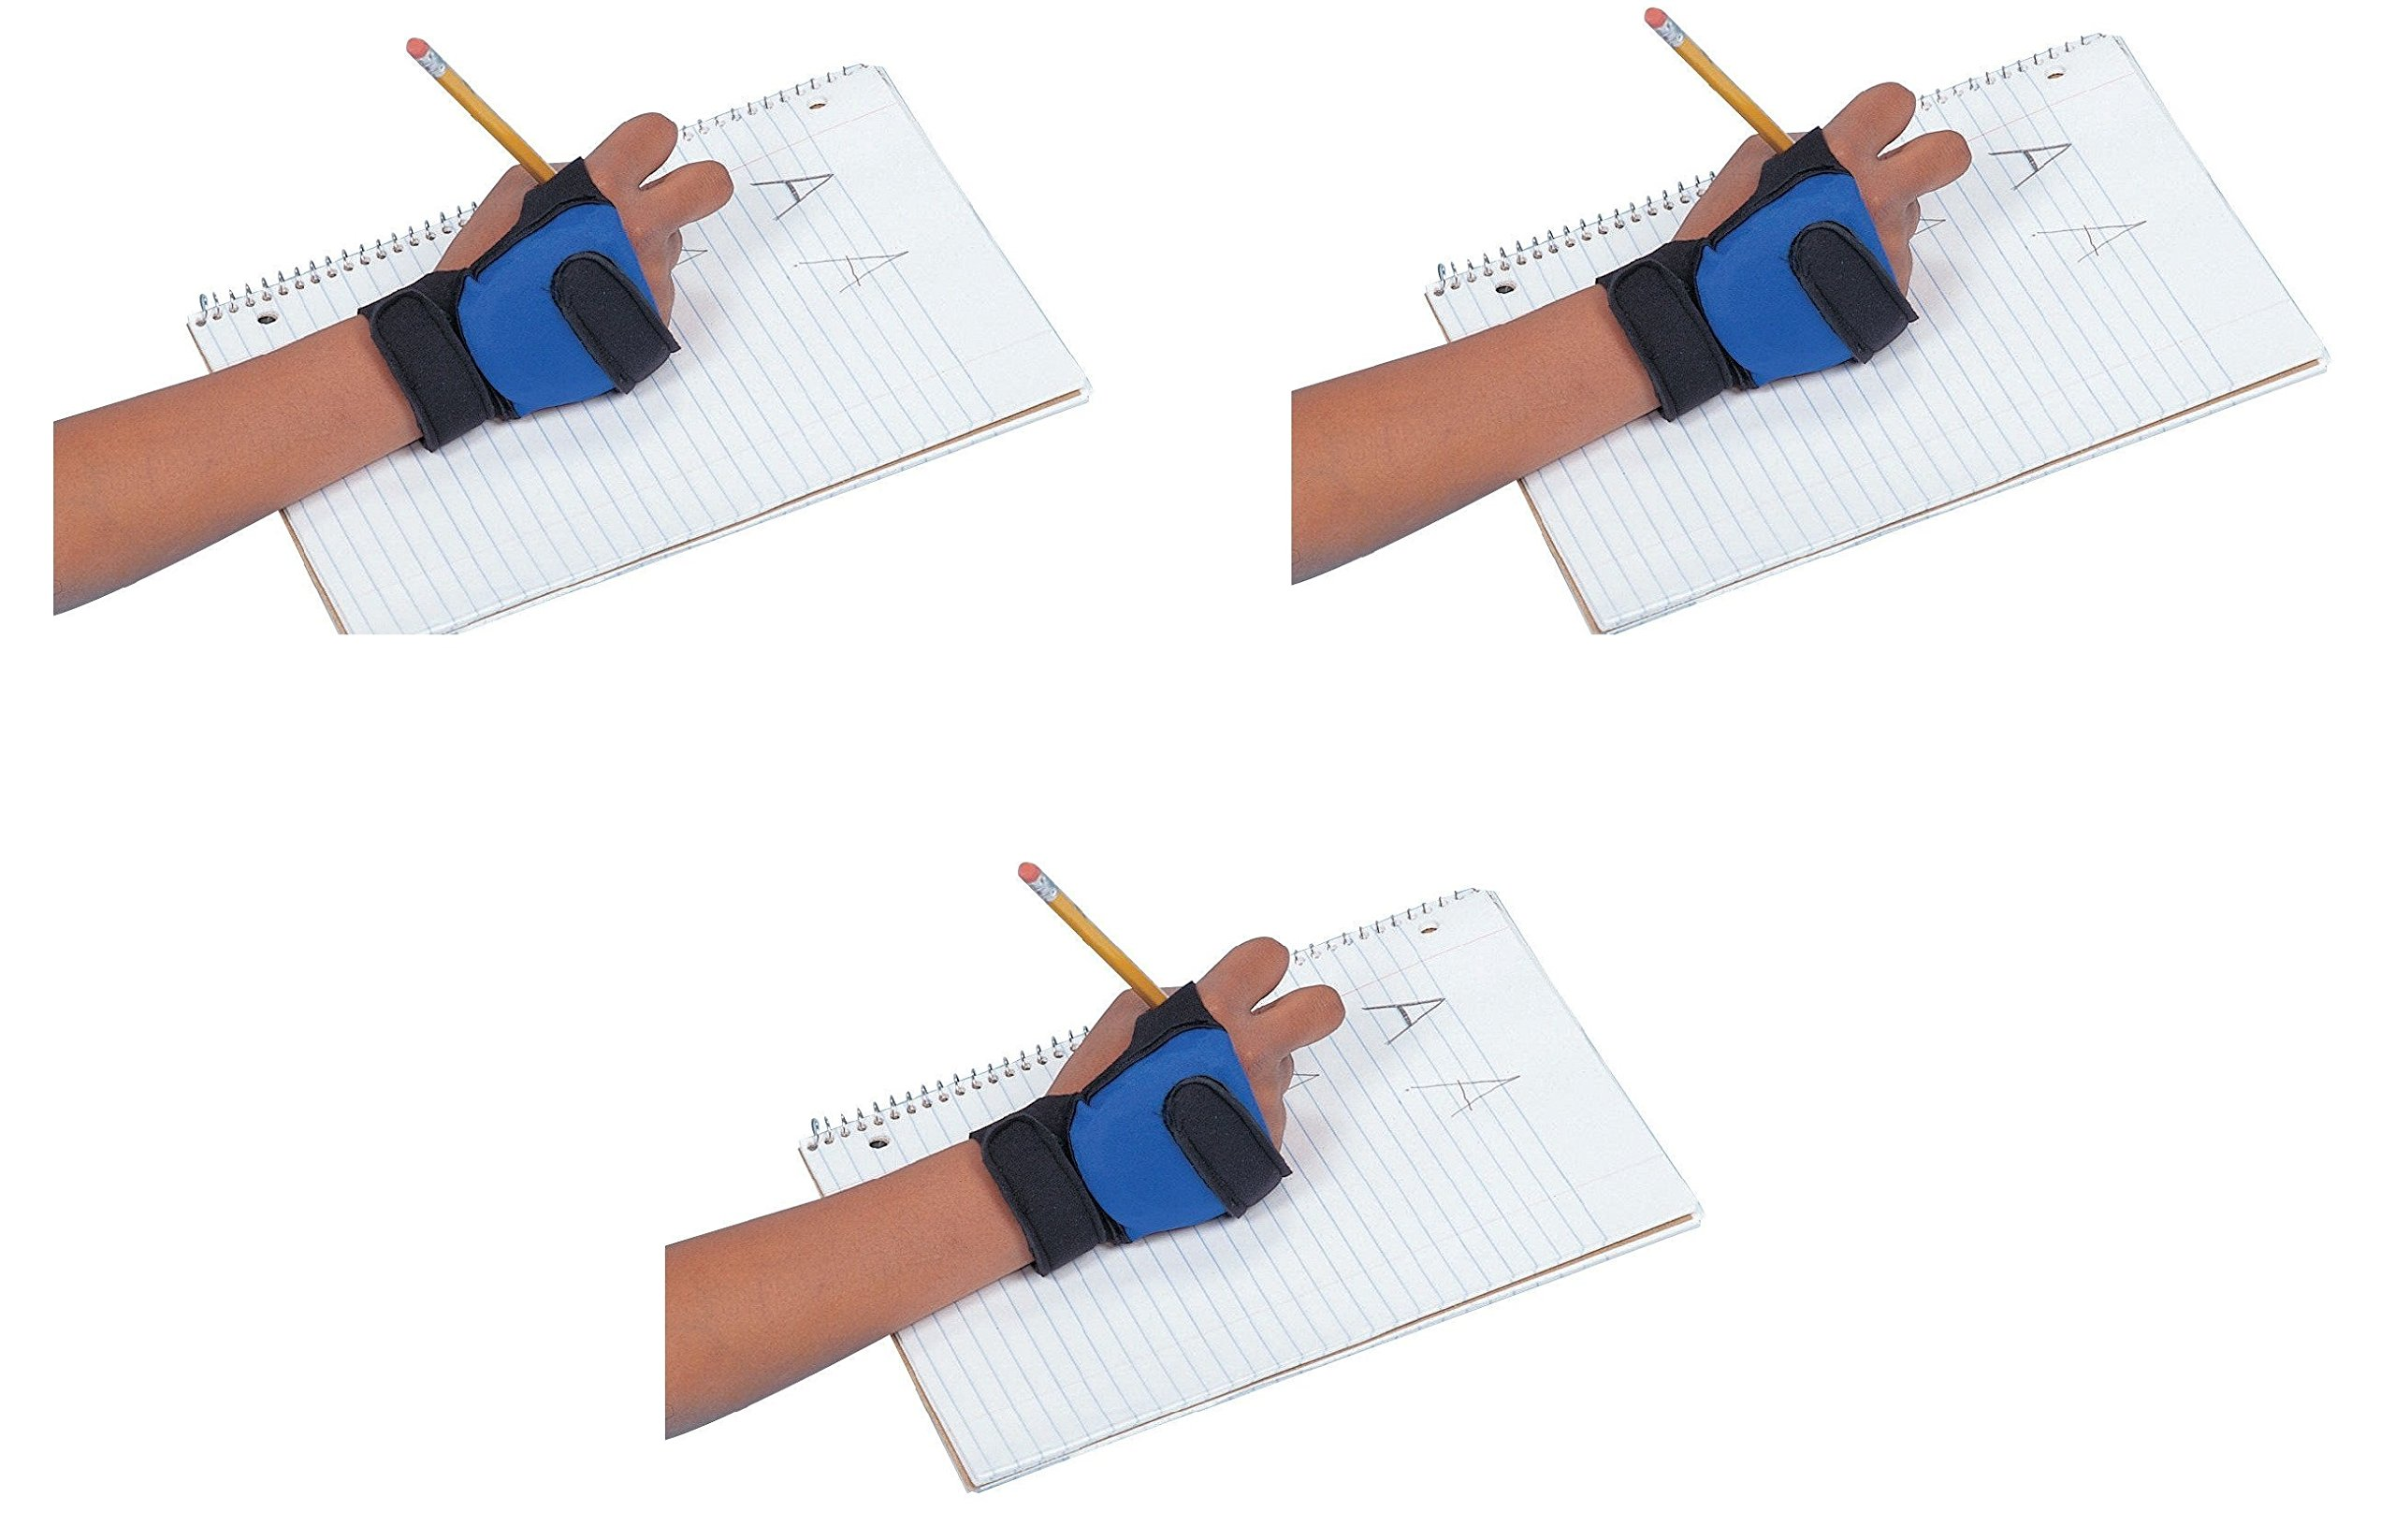 Abilitations 026712 Child Size Write Weight, Right Hand, 0.5 Pound (3 pack)